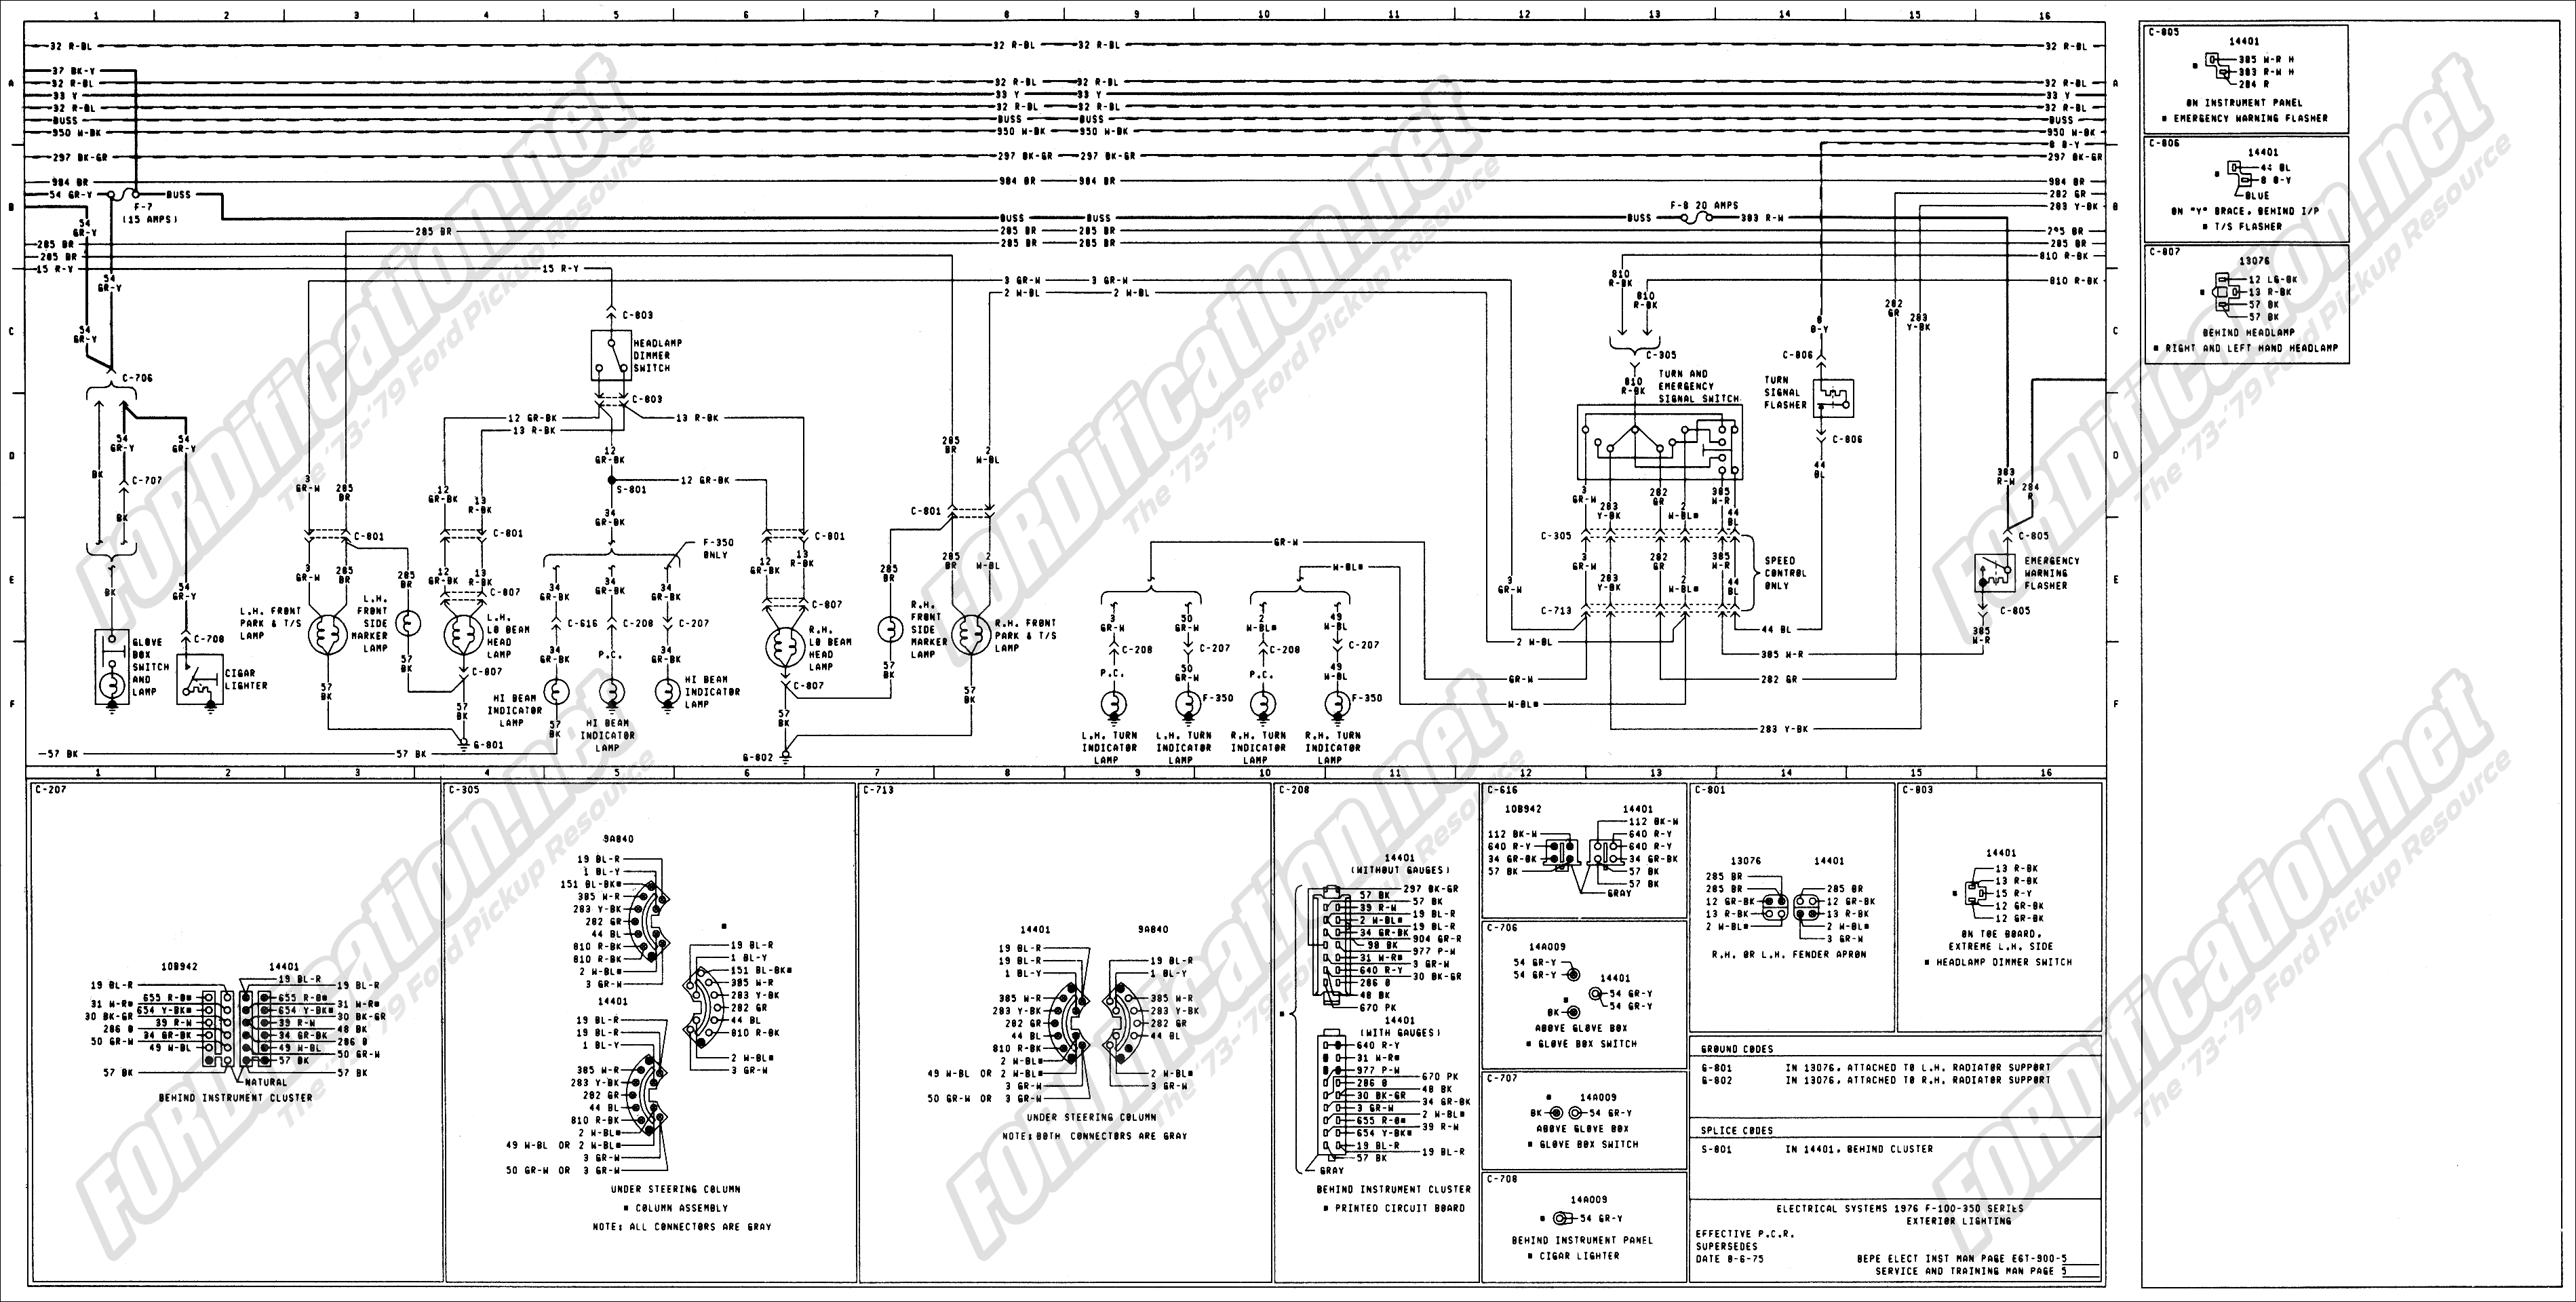 wiring_76master_5of9 1973 1979 ford truck wiring diagrams & schematics fordification net fordification wiring diagram at gsmportal.co